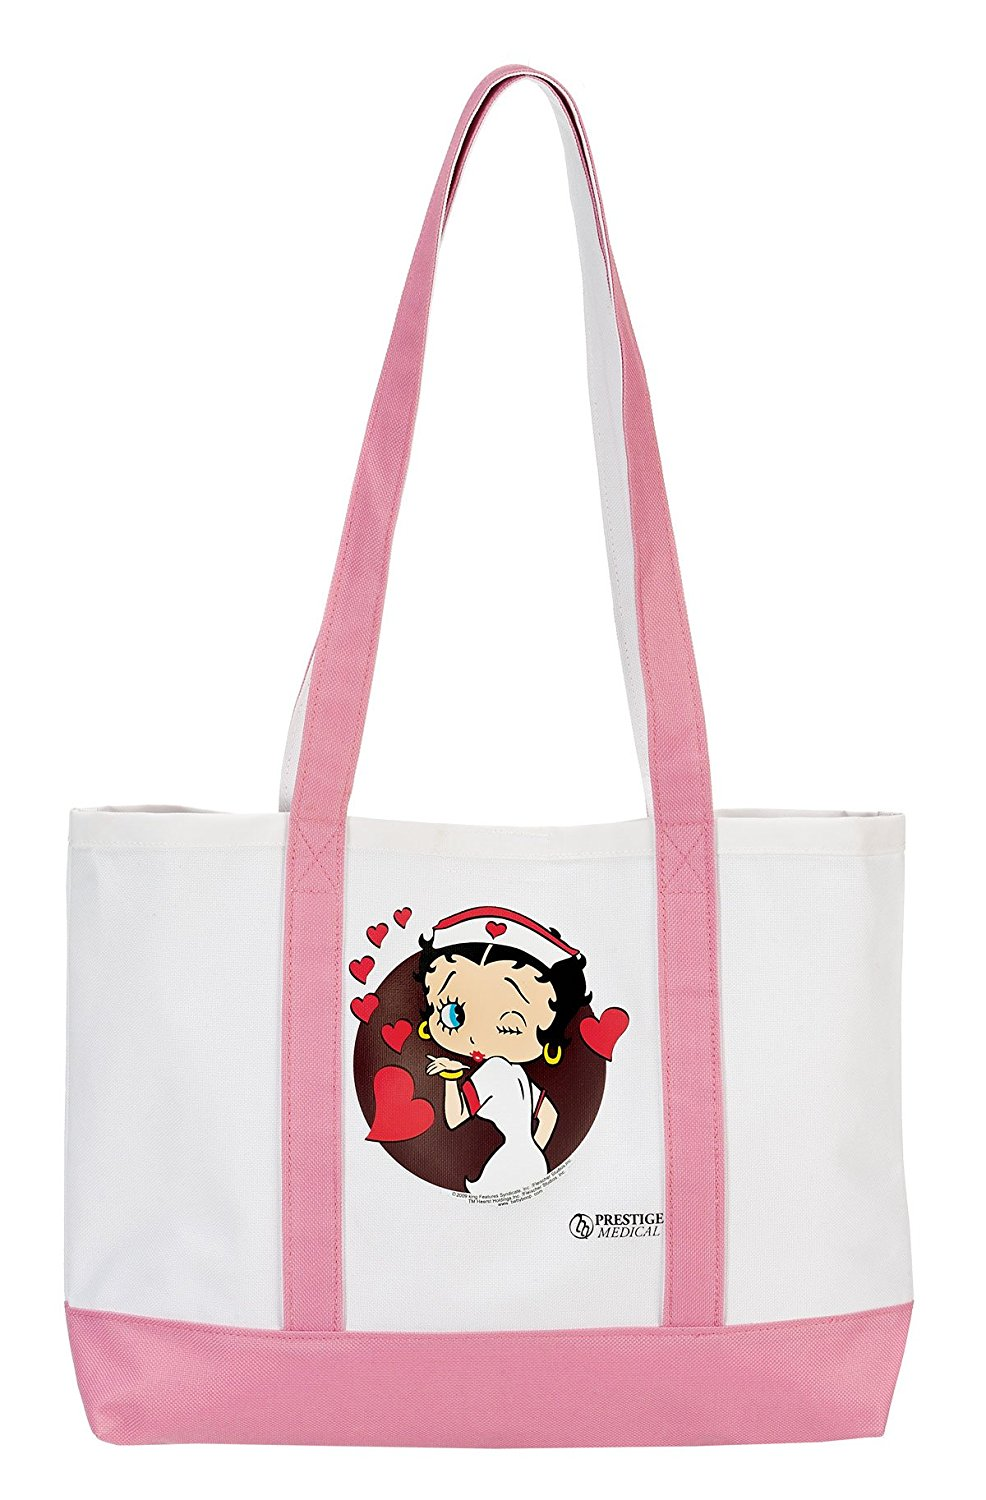 e8cc69fc3196 Prestige Medical Canvas Tote Bag, Nurse Trio Pink, Large